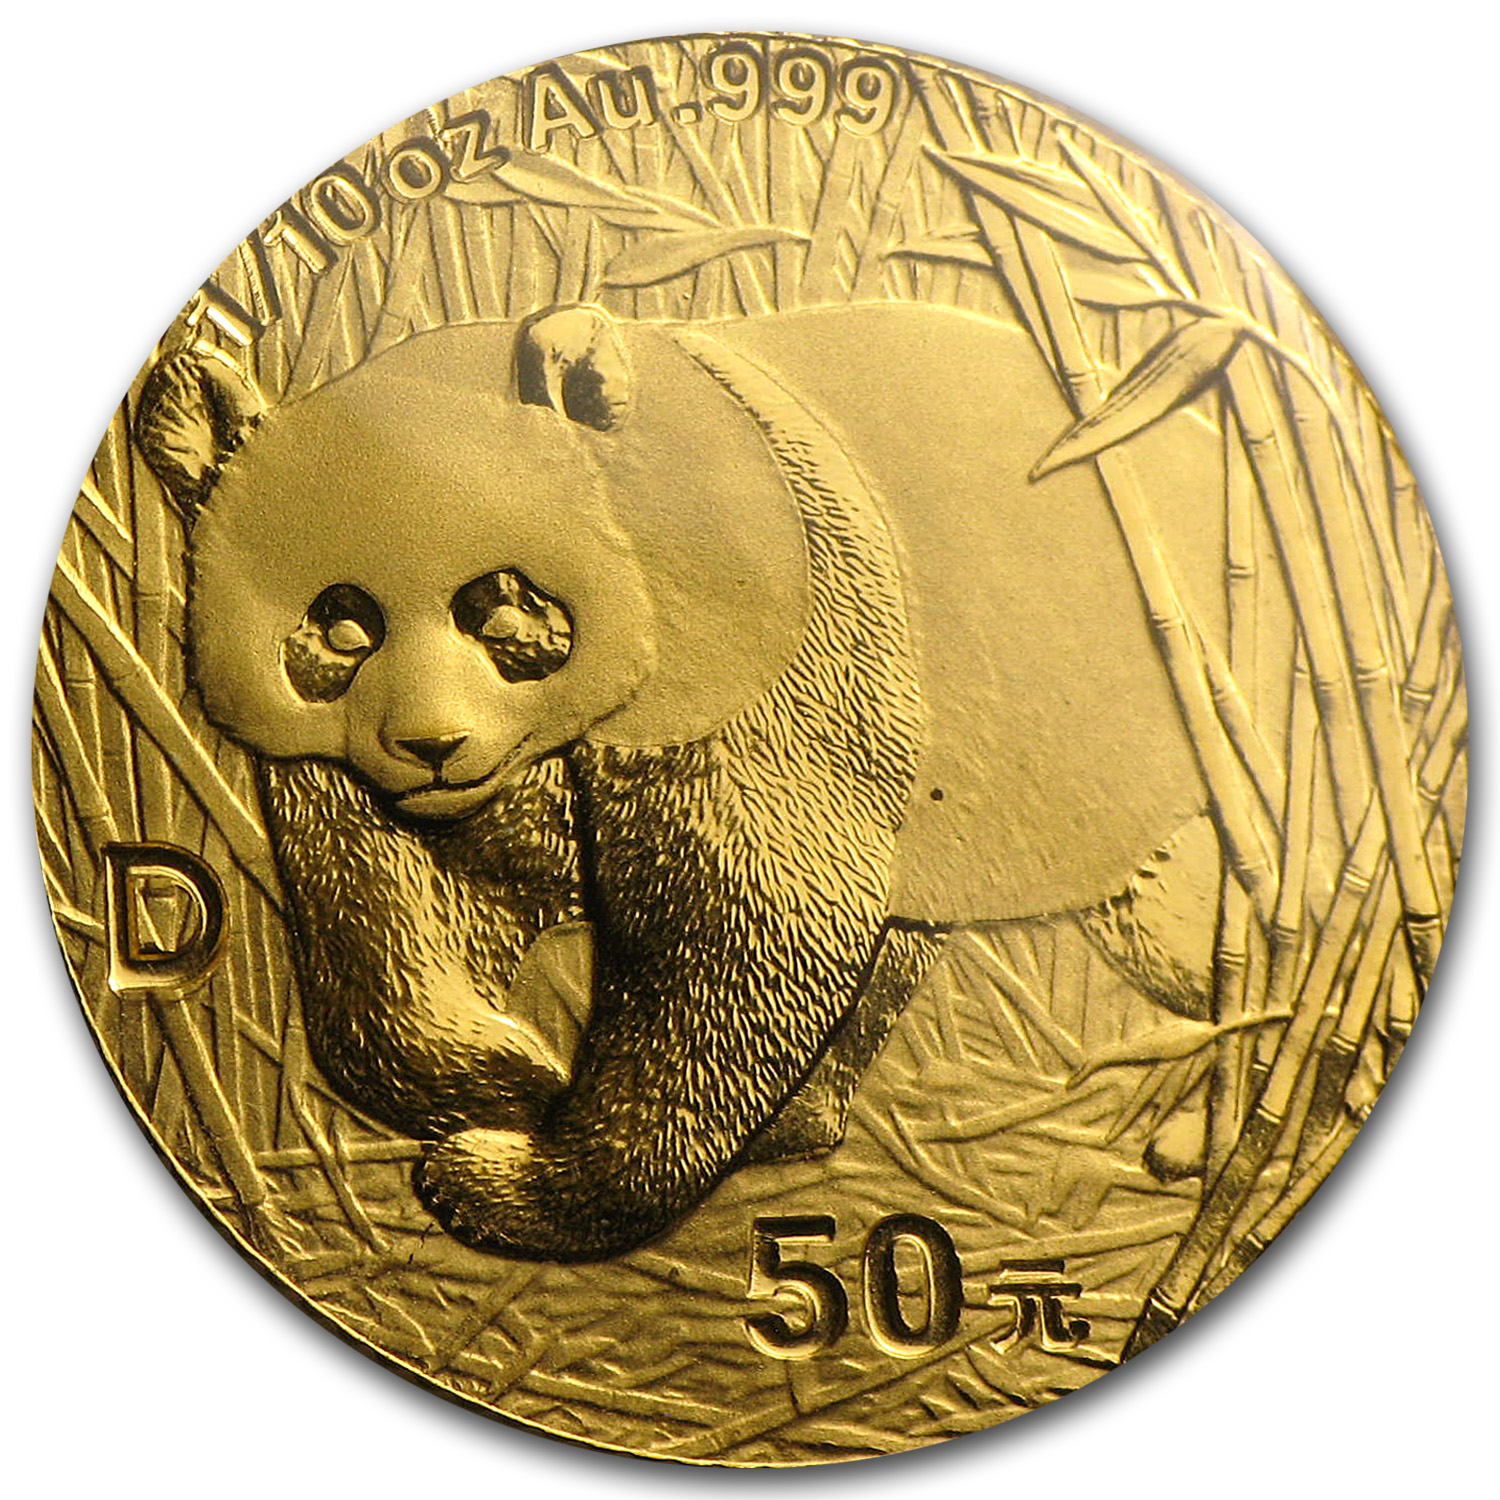 2001 D (1/10 oz) Gold Chinese Pandas - (Sealed)